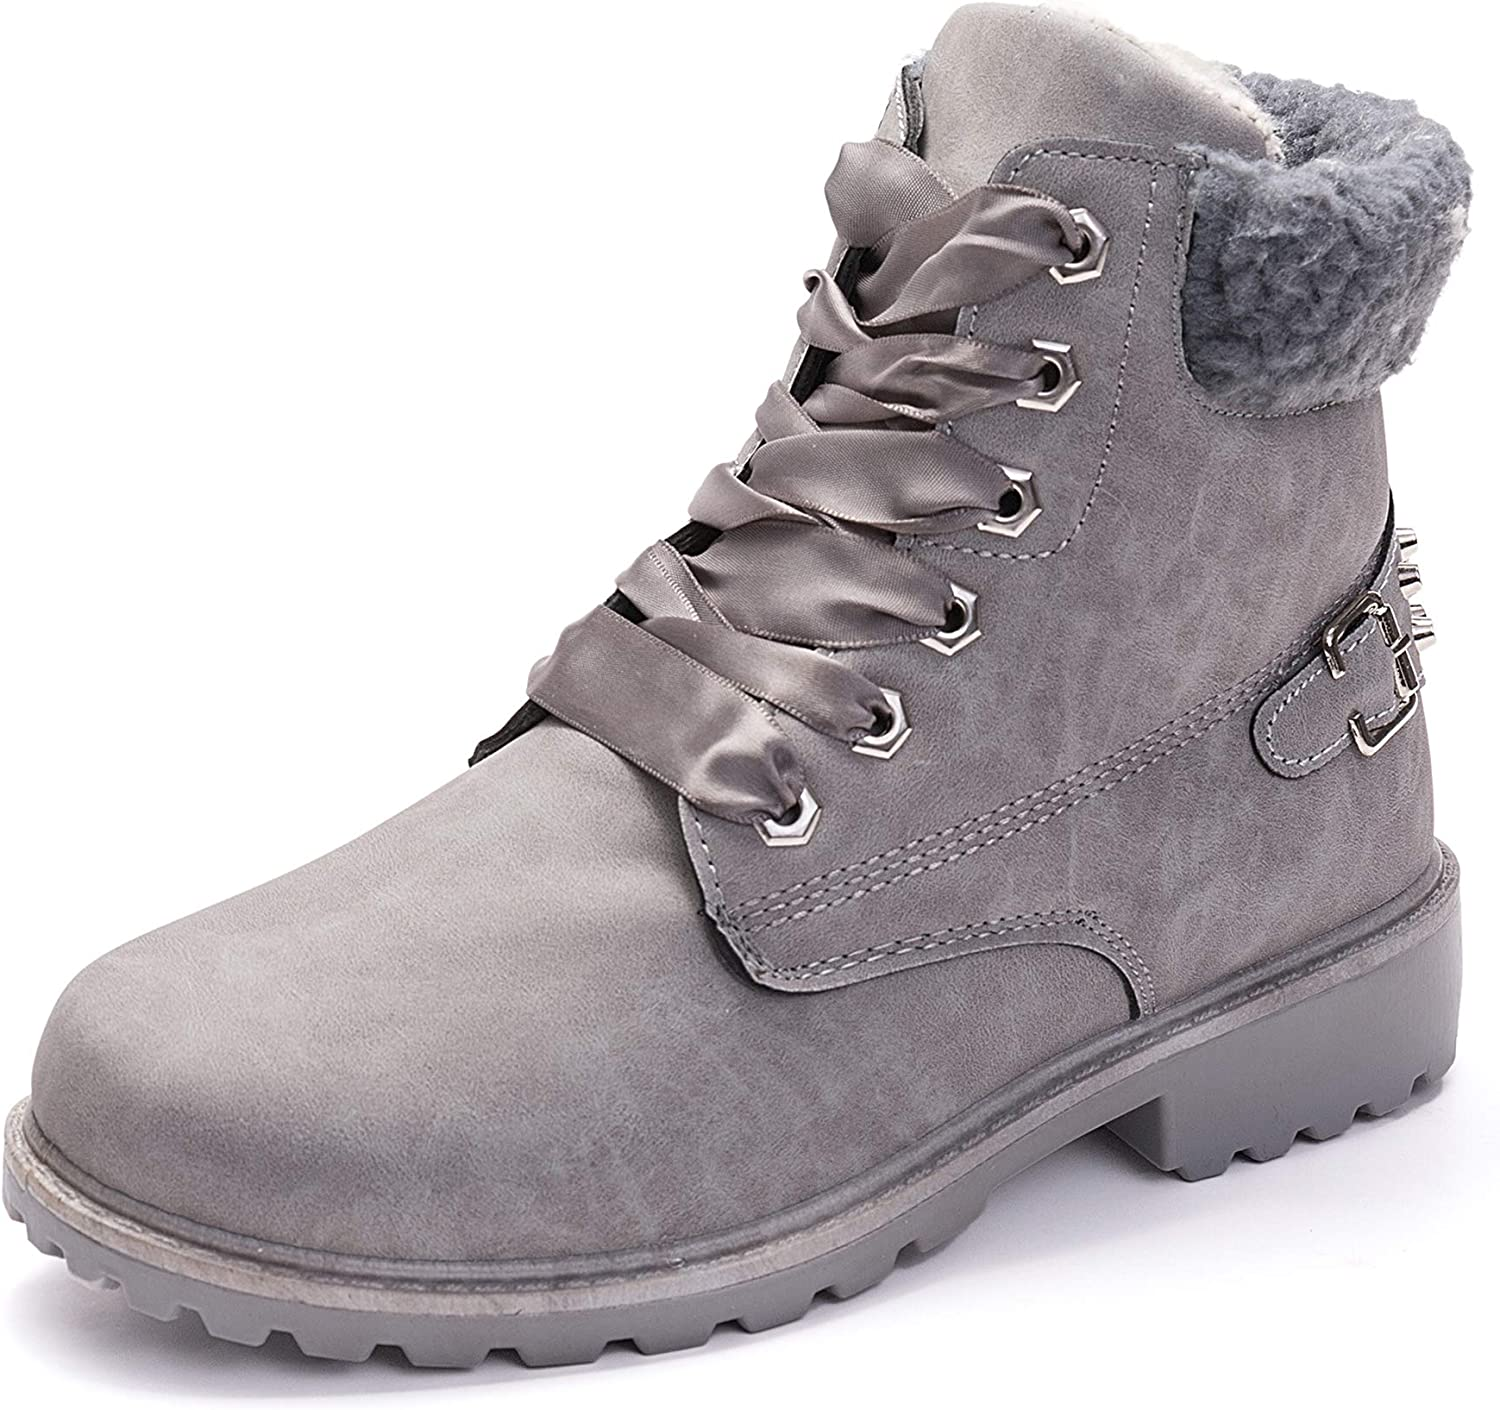 Slduv7 Winter Fur Womens Snow Boots Faux Leather Outdoor Hiking Lace Ankle Bootie Women